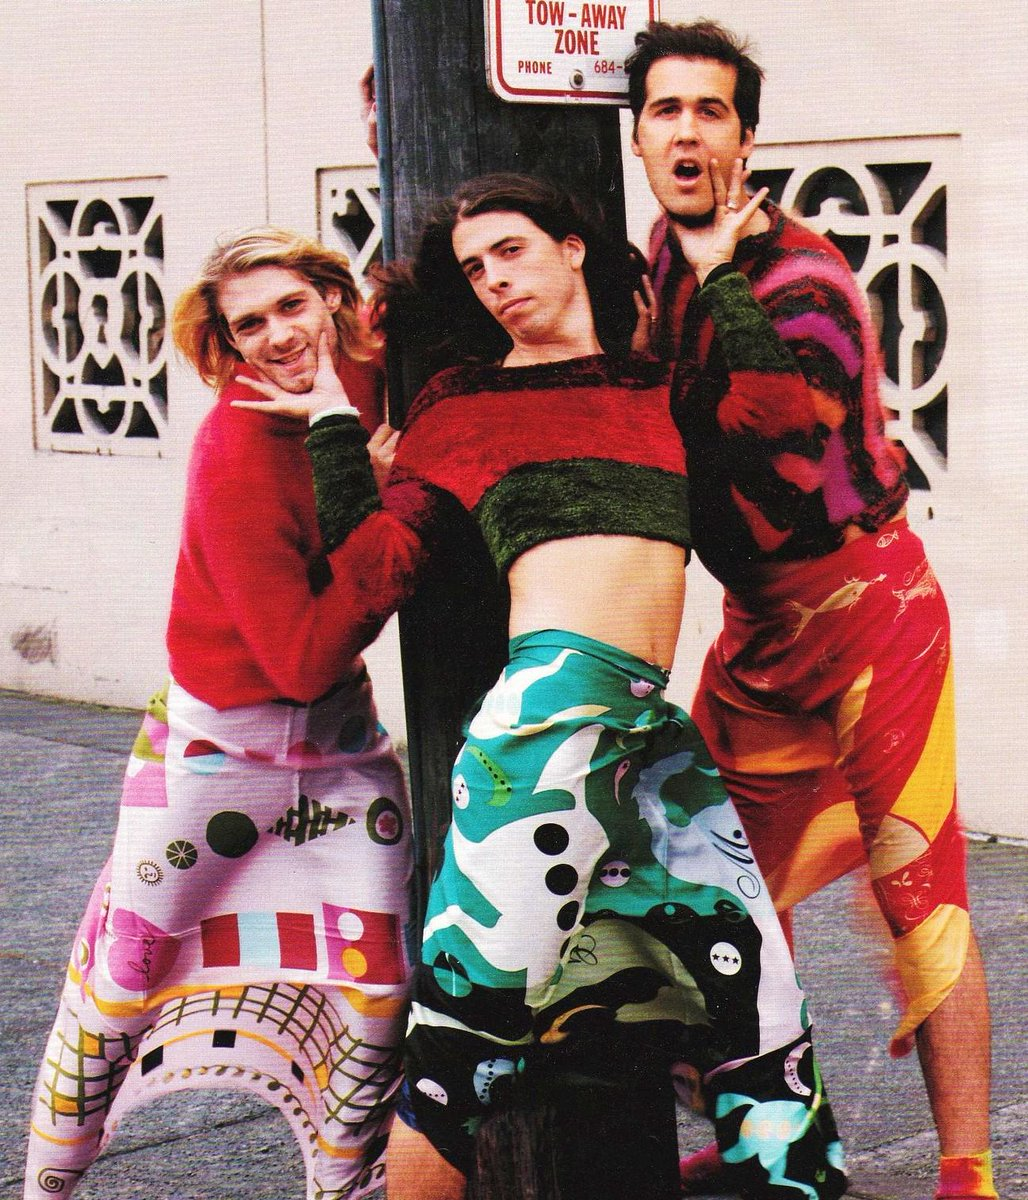 """""""I like to wear dresses because they're comfortable. Men wearing dresses isn't controversial."""" - Kurt Cobain. http://t.co/cC0y68s2Rq"""